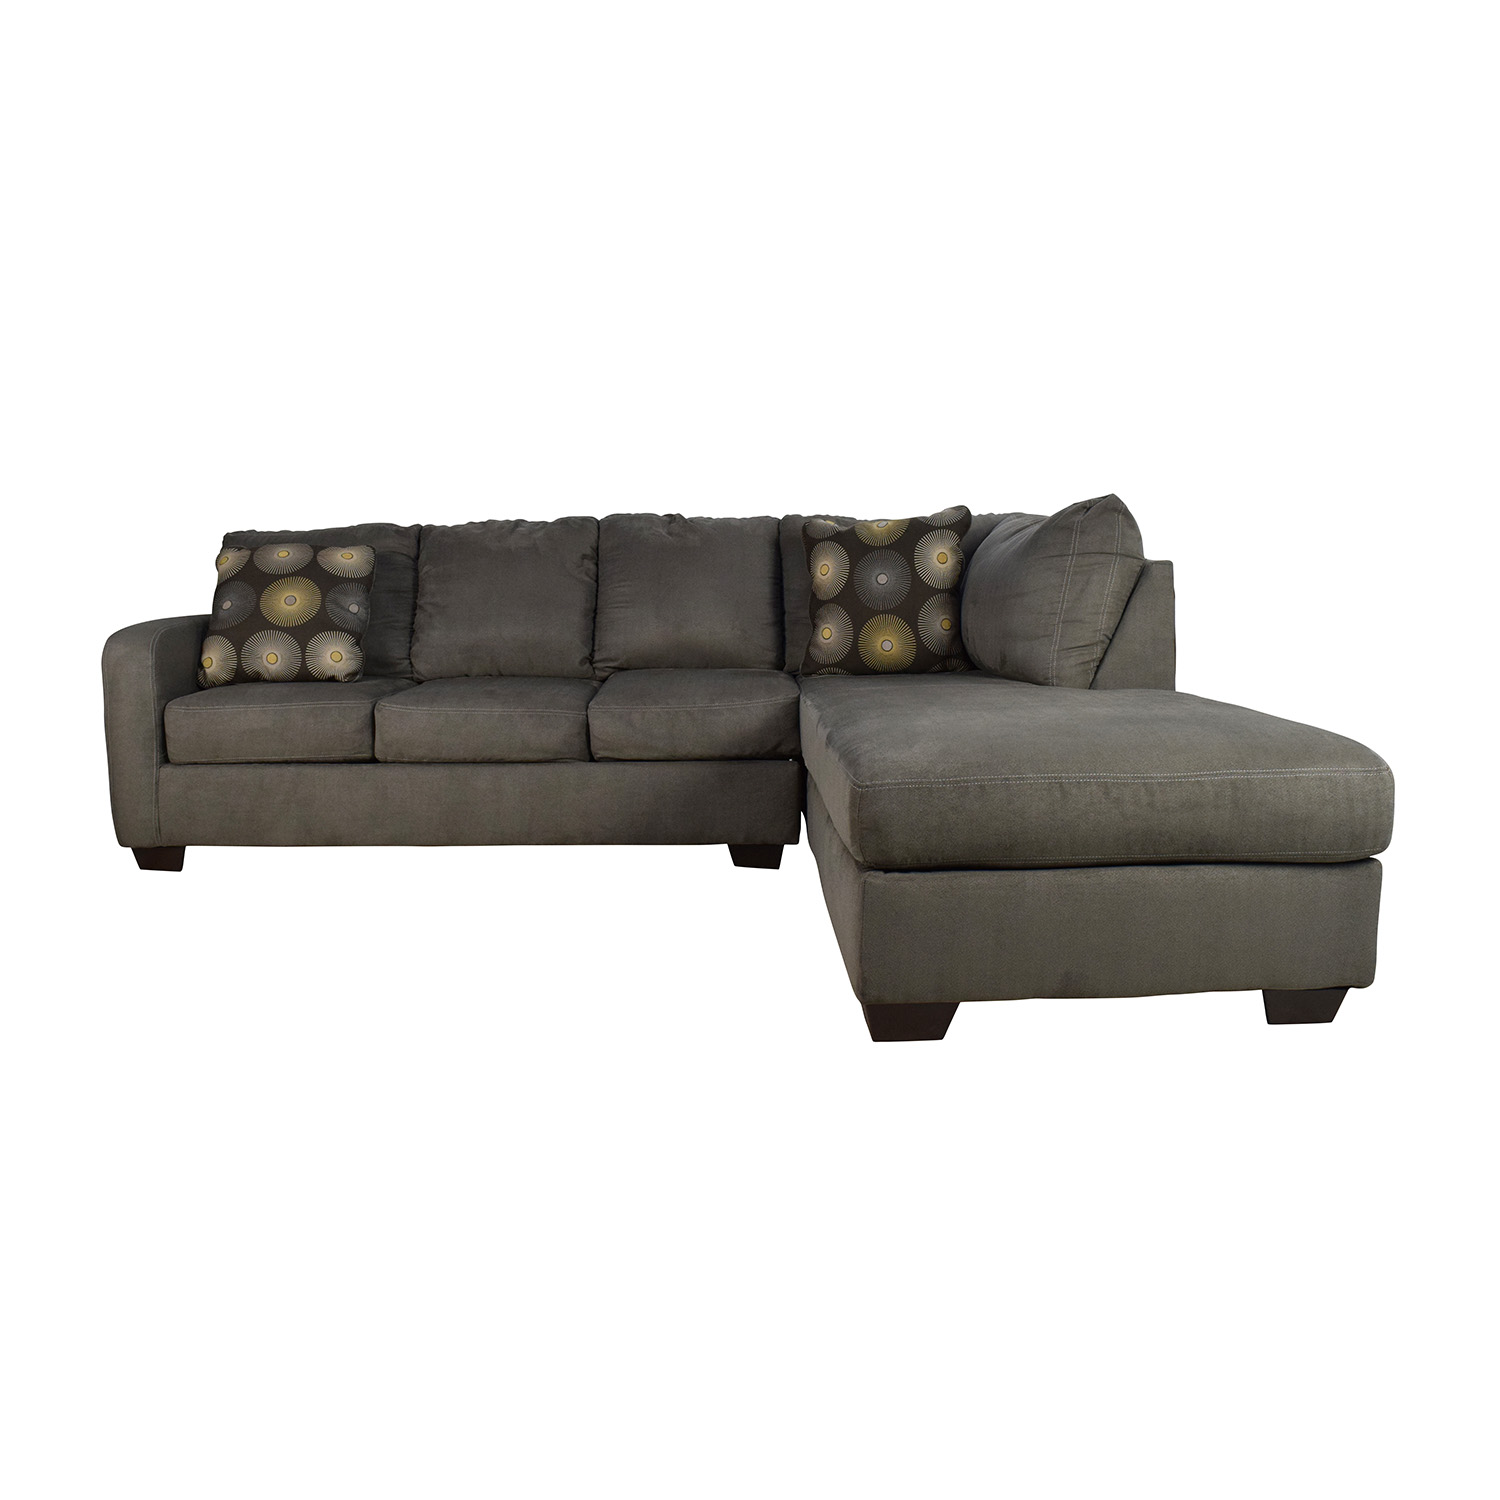 30% OFF Ashley Furniture Ashley Furniture Waverly Gray Sectional